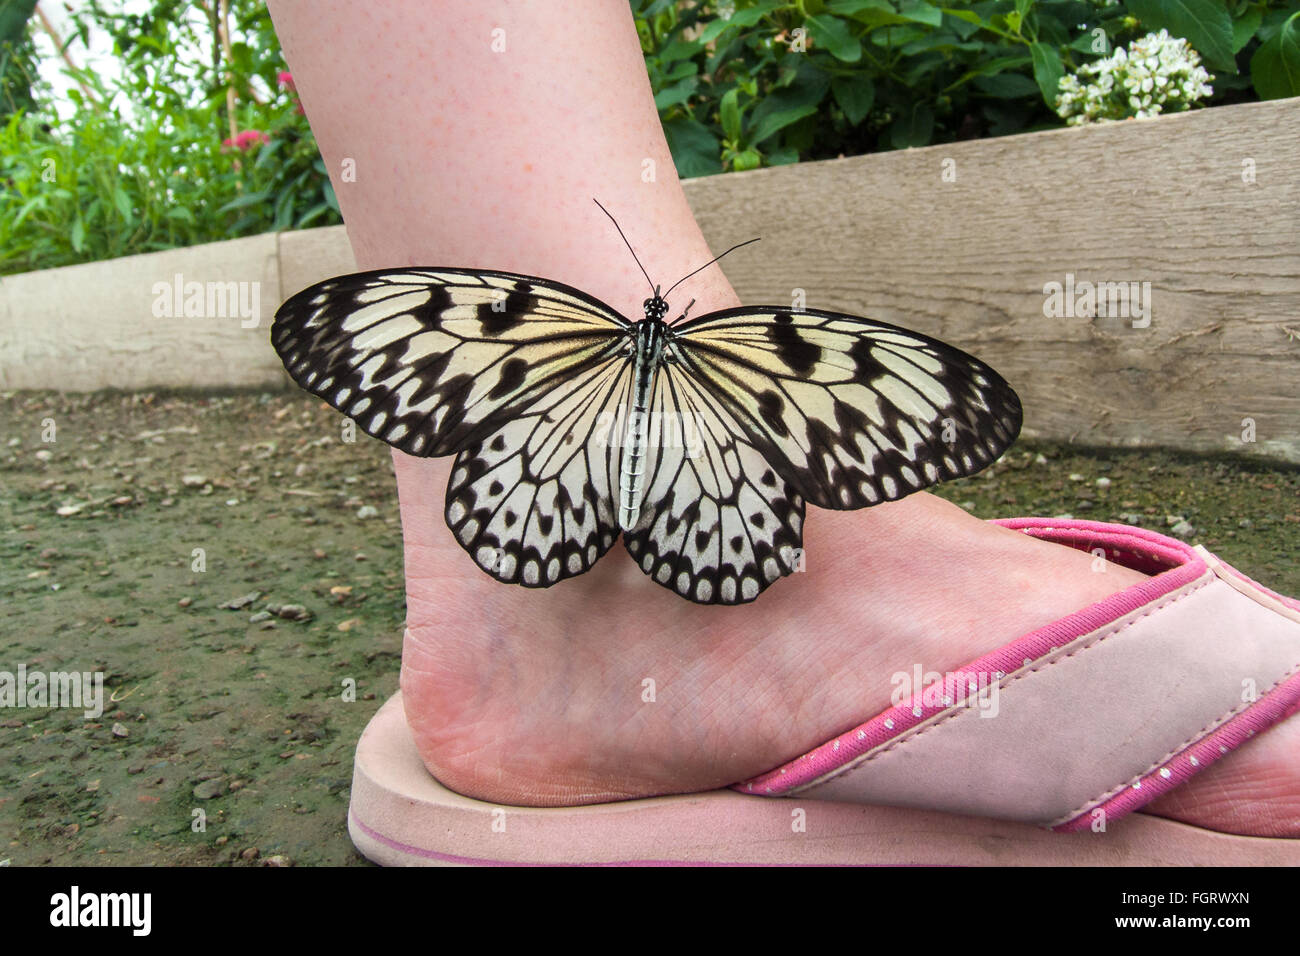 Large Tree Nymph butterfly (Idea leuconoe) resting on a girls ankle. - Stock Image